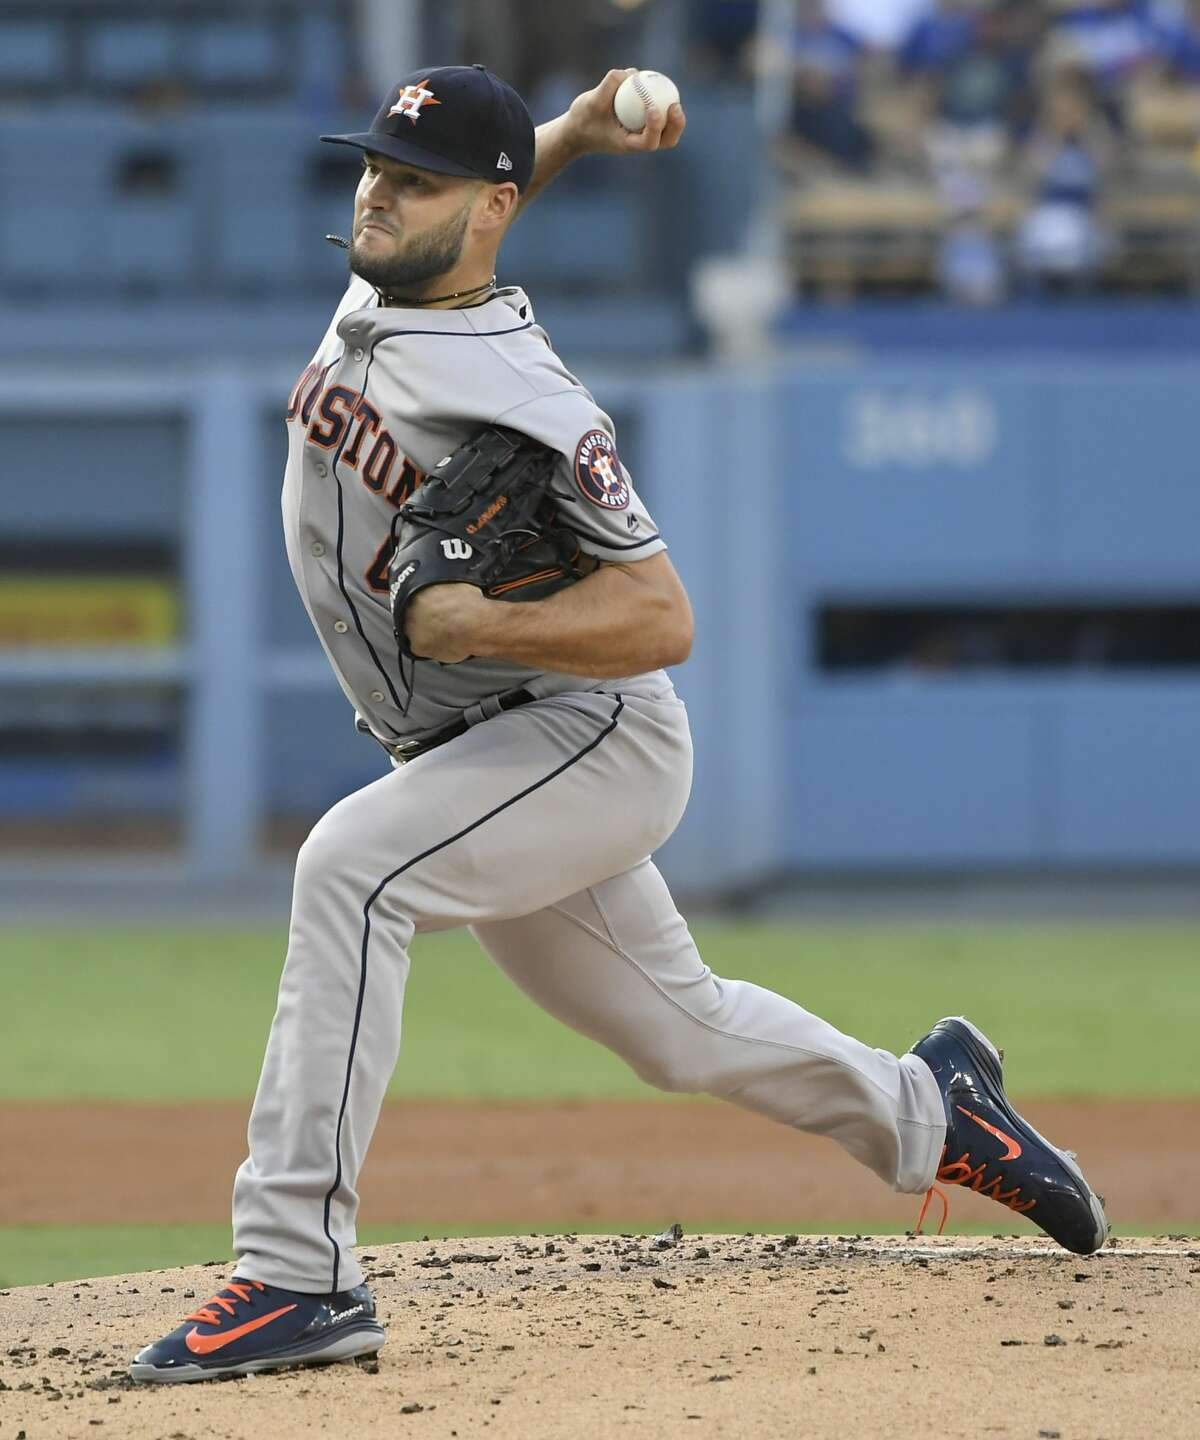 Houston Astros starting pitcher Lance McCullers Jr. throws against the Los Angeles Dodgers during the second inning of a baseball game Saturday, Aug. 4, 2018, in Los Angeles. (AP Photo/John McCoy)